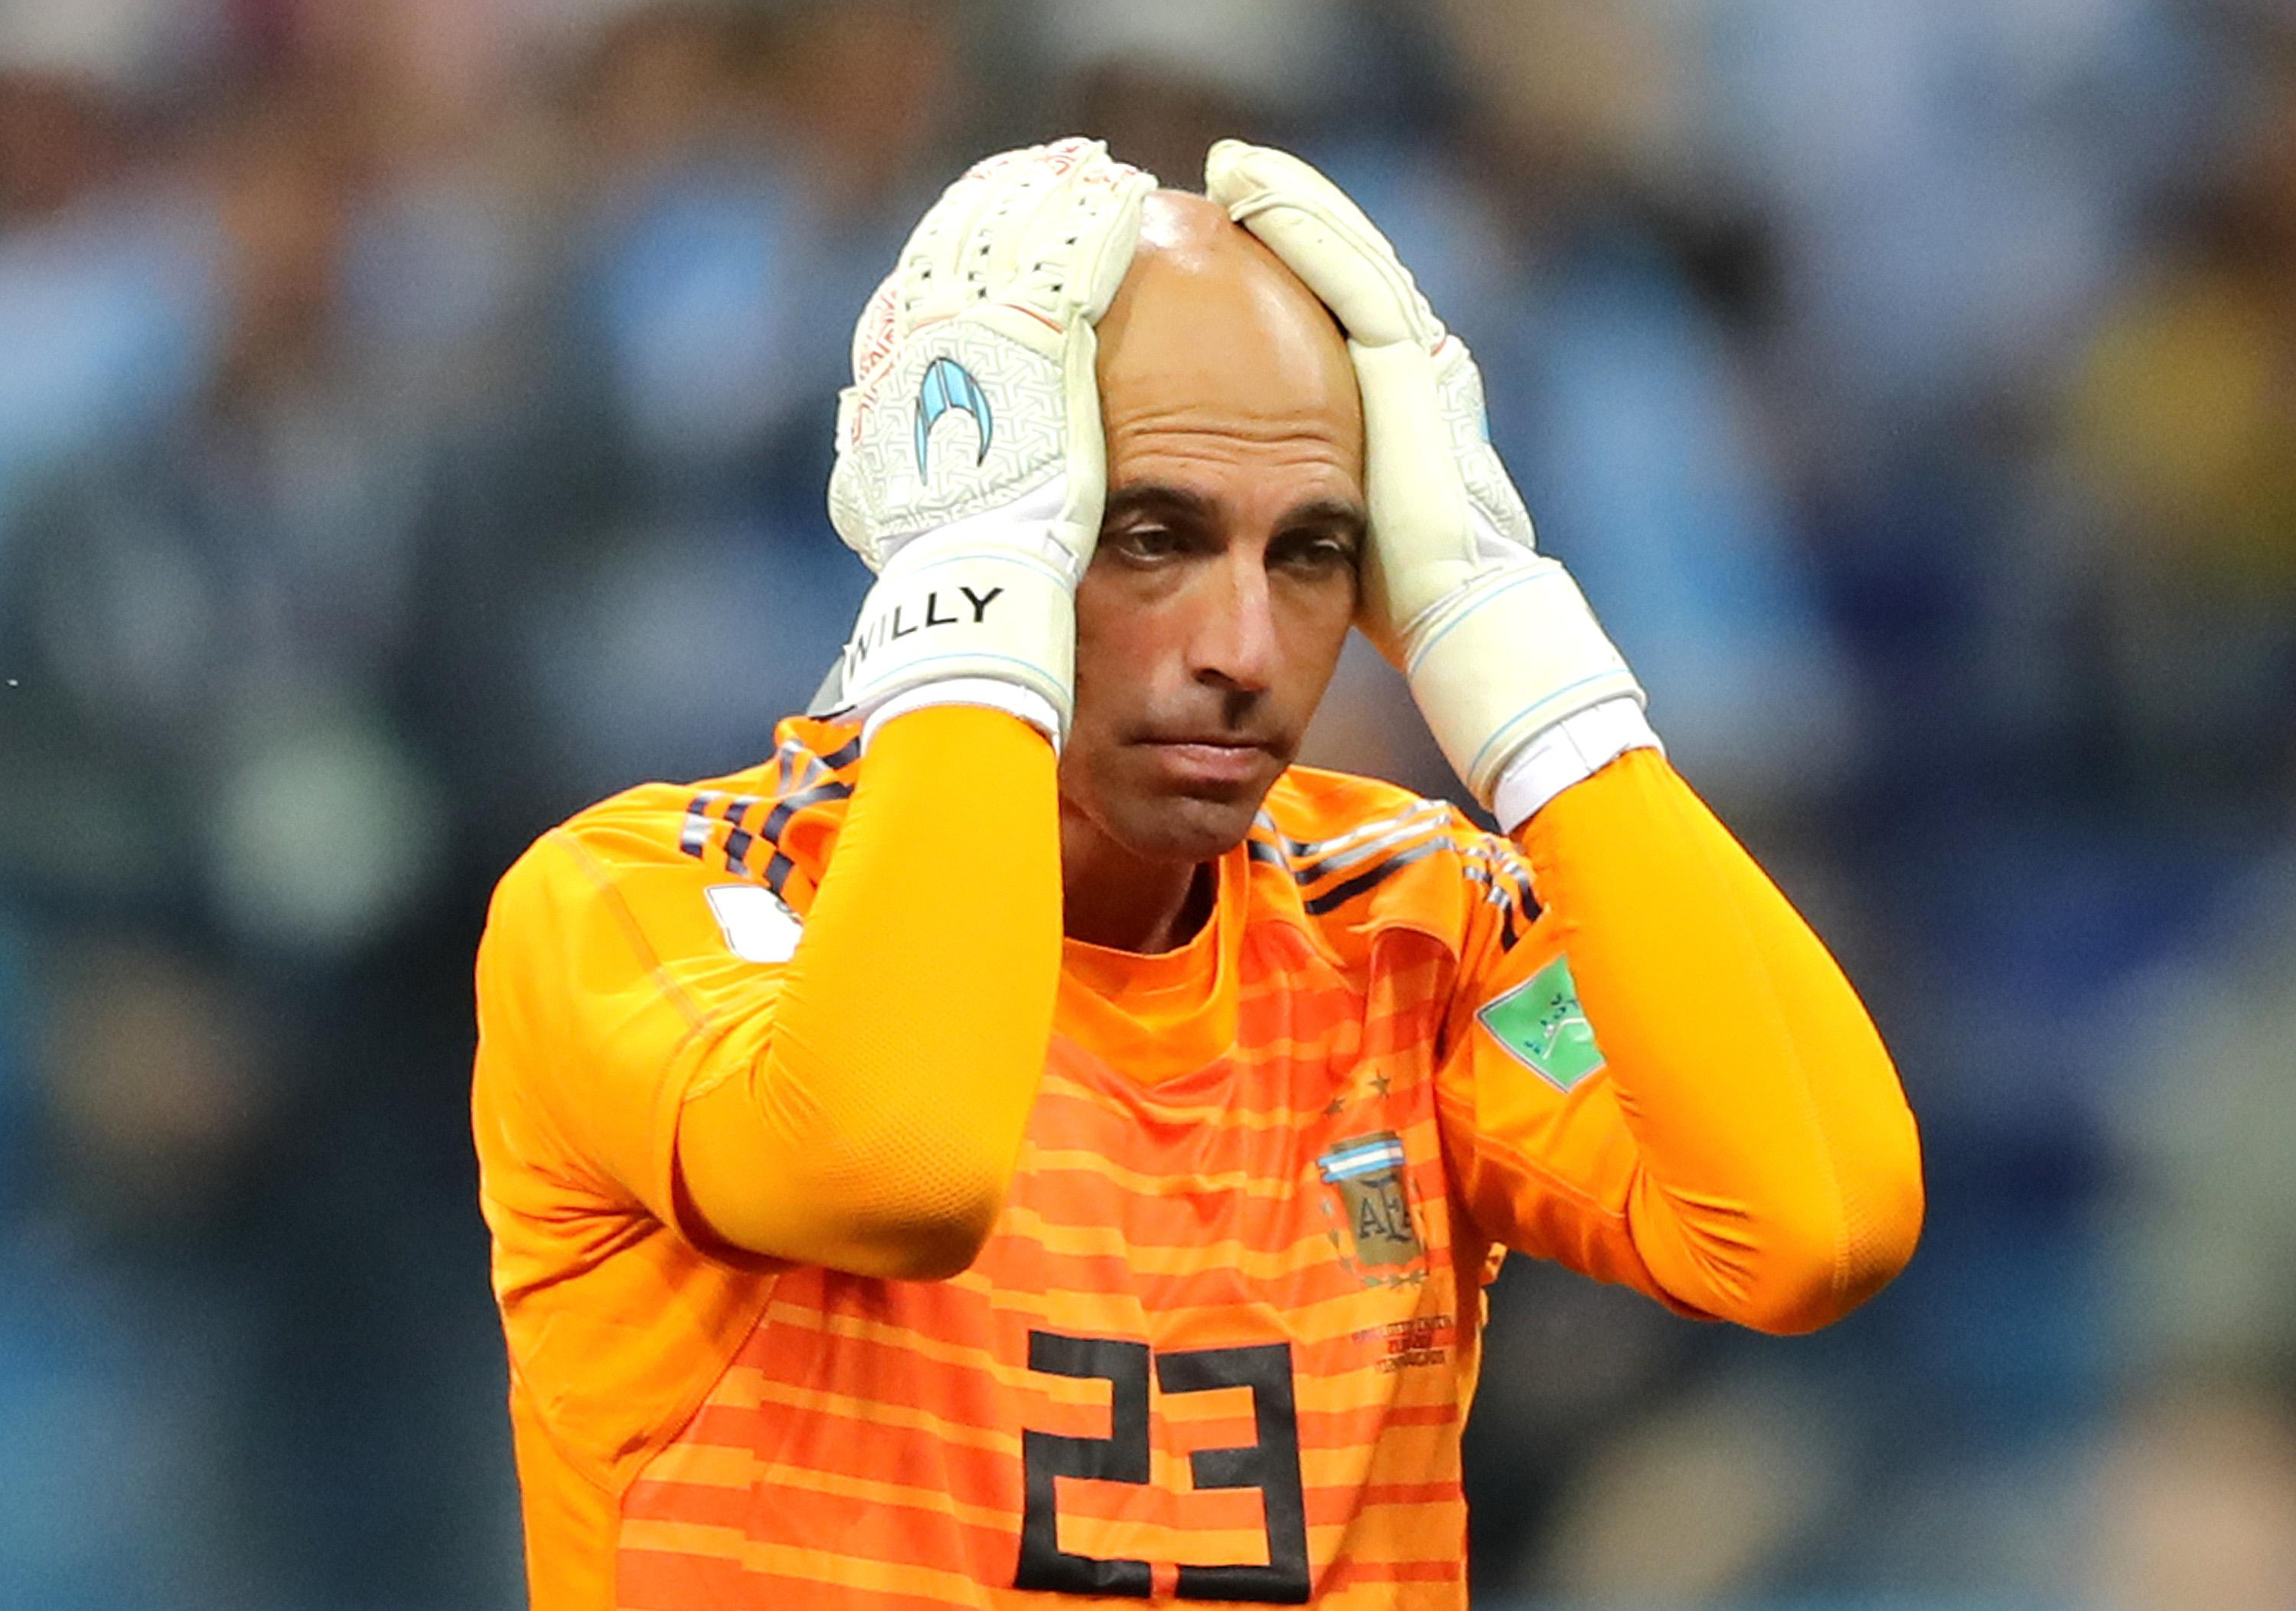 NIZHNY NOVGOROD, RUSSIA - JUNE 21:  Wilfredo Caballero of Argentina holds his head in his hands as he stands dejected after his mistake leads to a Croatia goal scored by Ante Rebic (not pictured) during the 2018 FIFA World Cup Russia group D match between Argentina and Croatia at Nizhny Novgorod Stadium on June 21, 2018 in Nizhny Novgorod, Russia.  (Photo by Elsa/Getty Images)